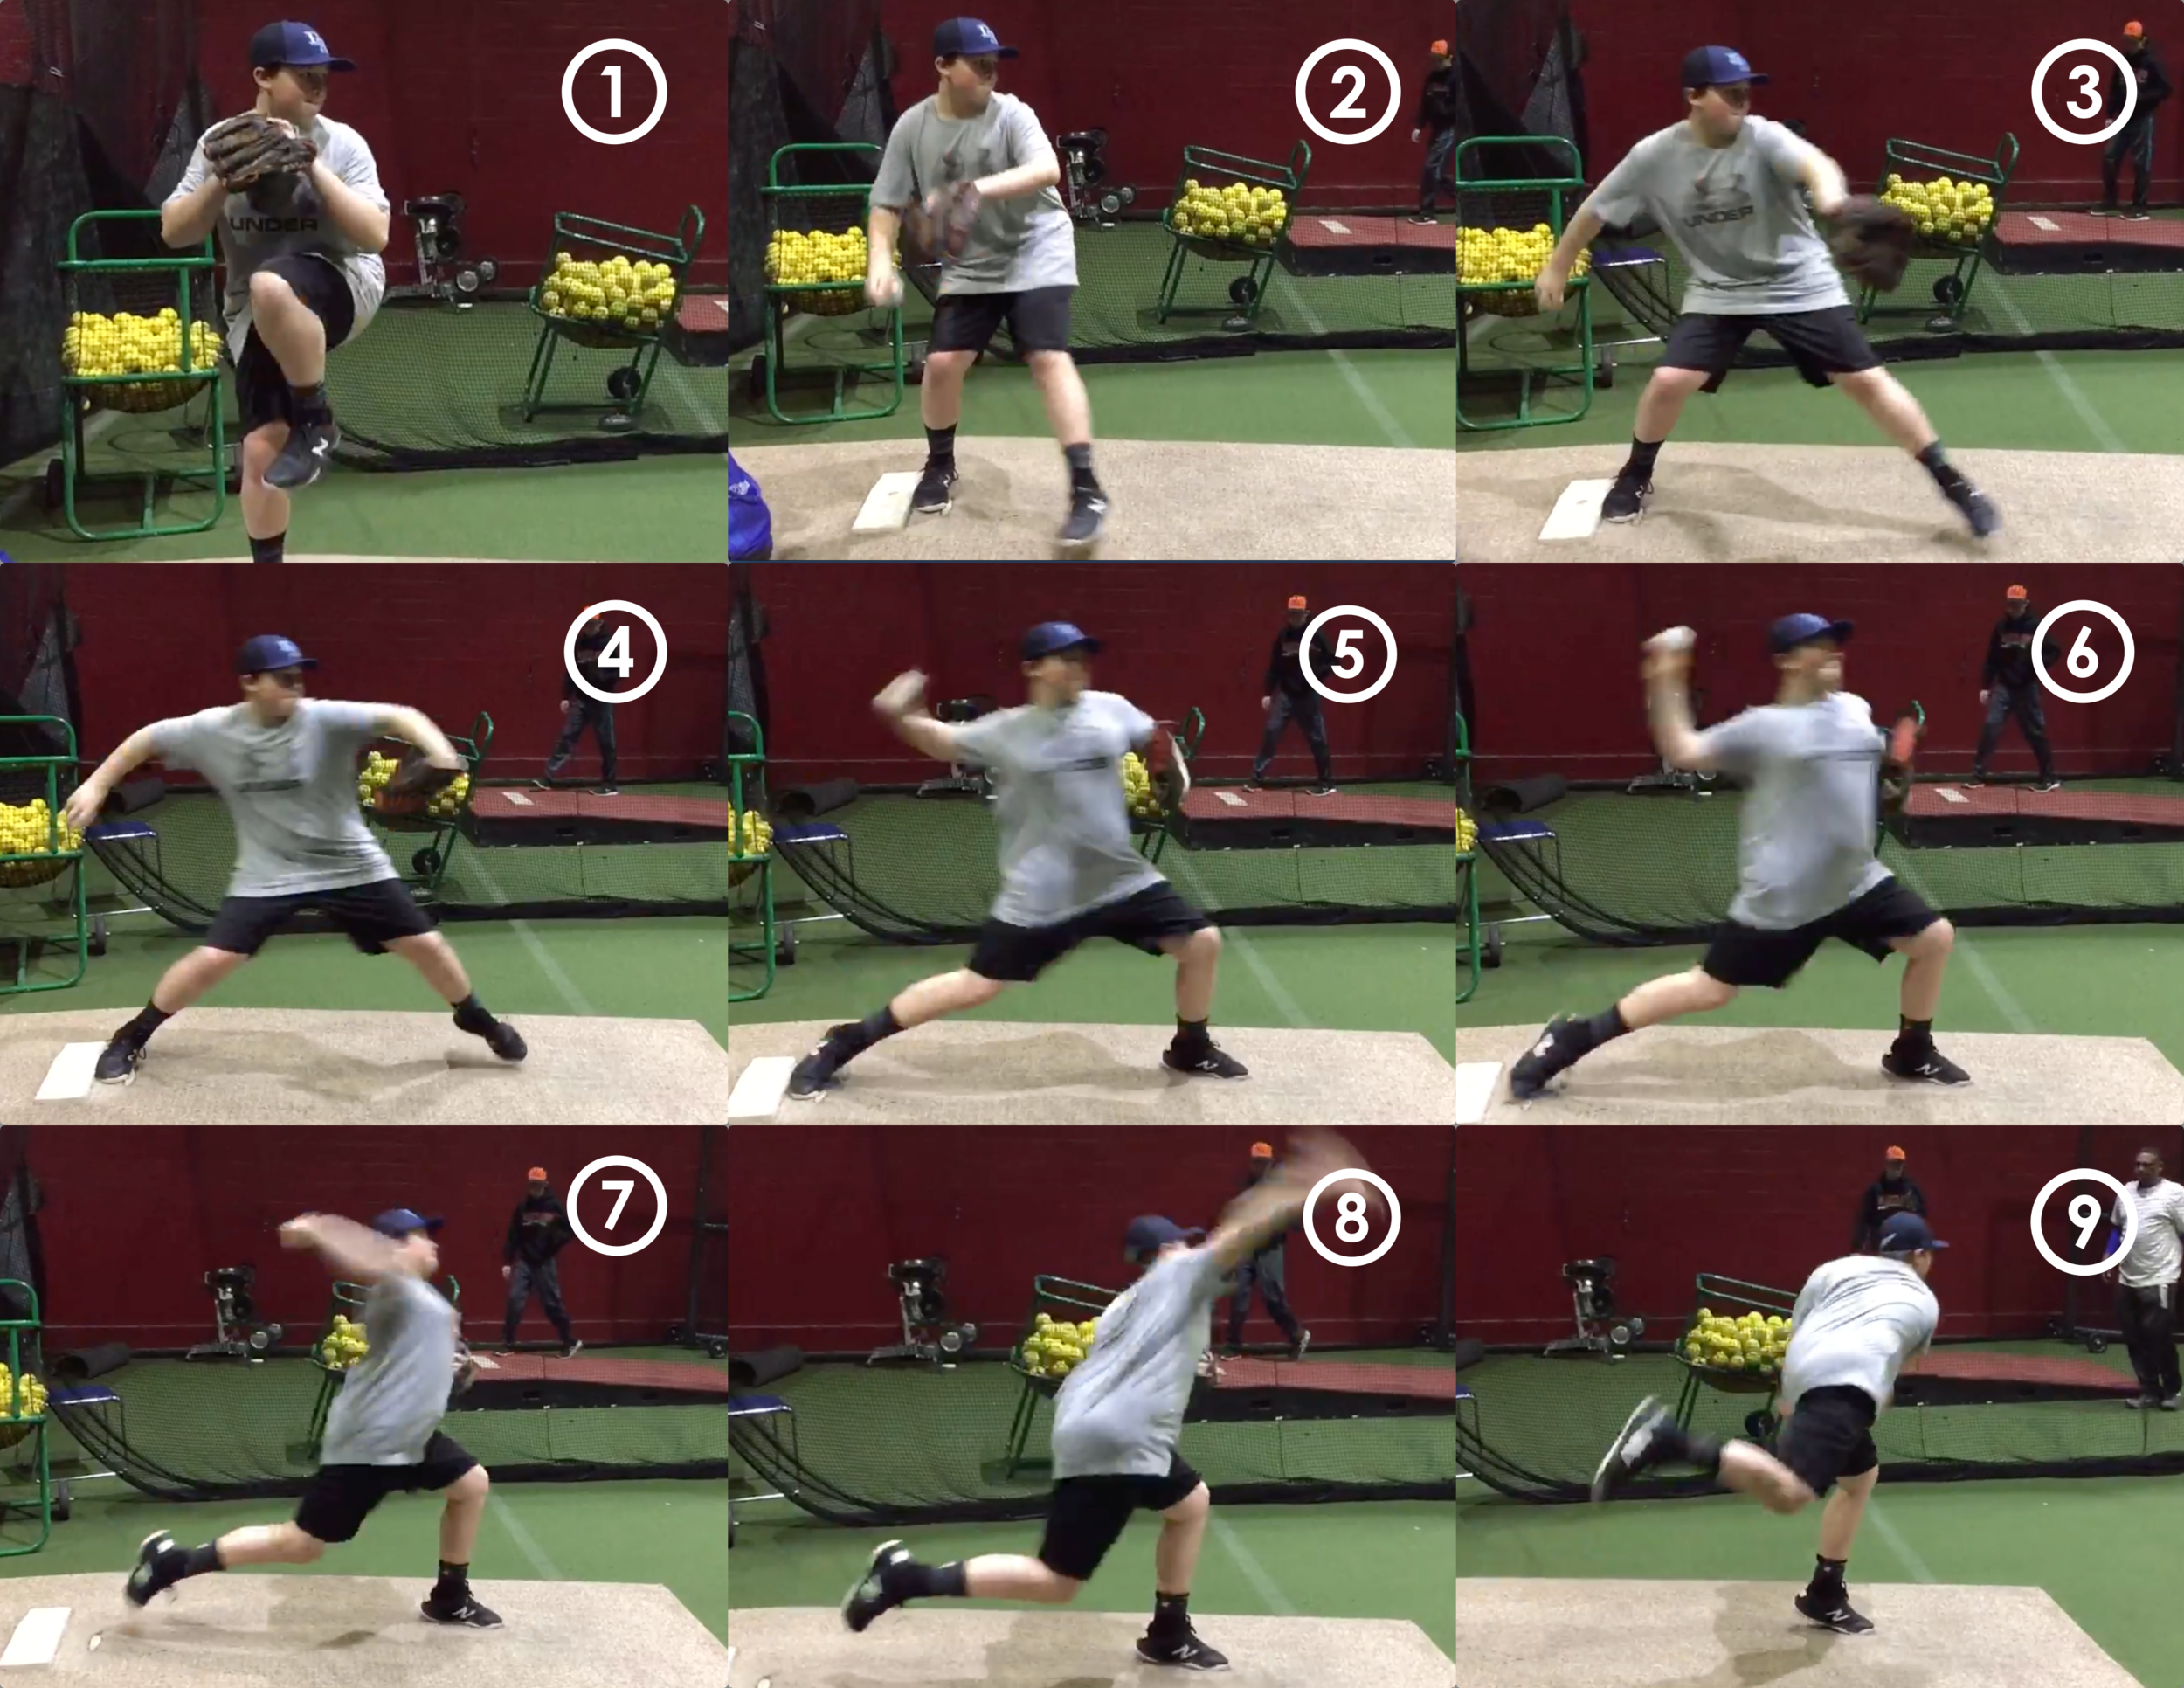 Phase Progression - Become more educated on the sequence of movements associated with an efficient throwing motion through the DVS Delivery Phase Overview. A description of each phase will also be provided so you can start relating back to your own delivery.